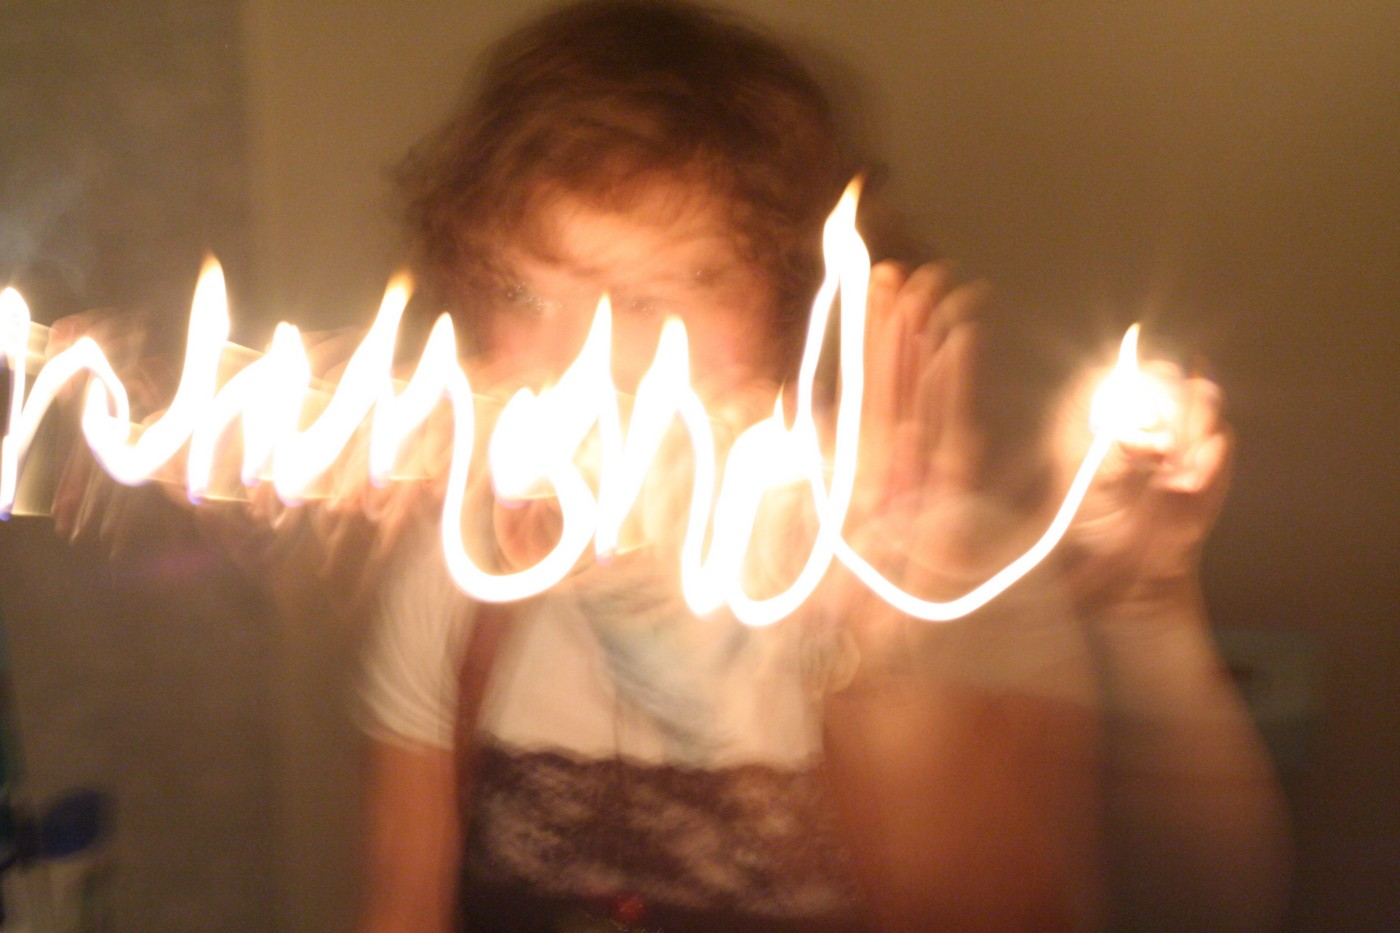 A blurry long-exposure photo of a person writing with light.